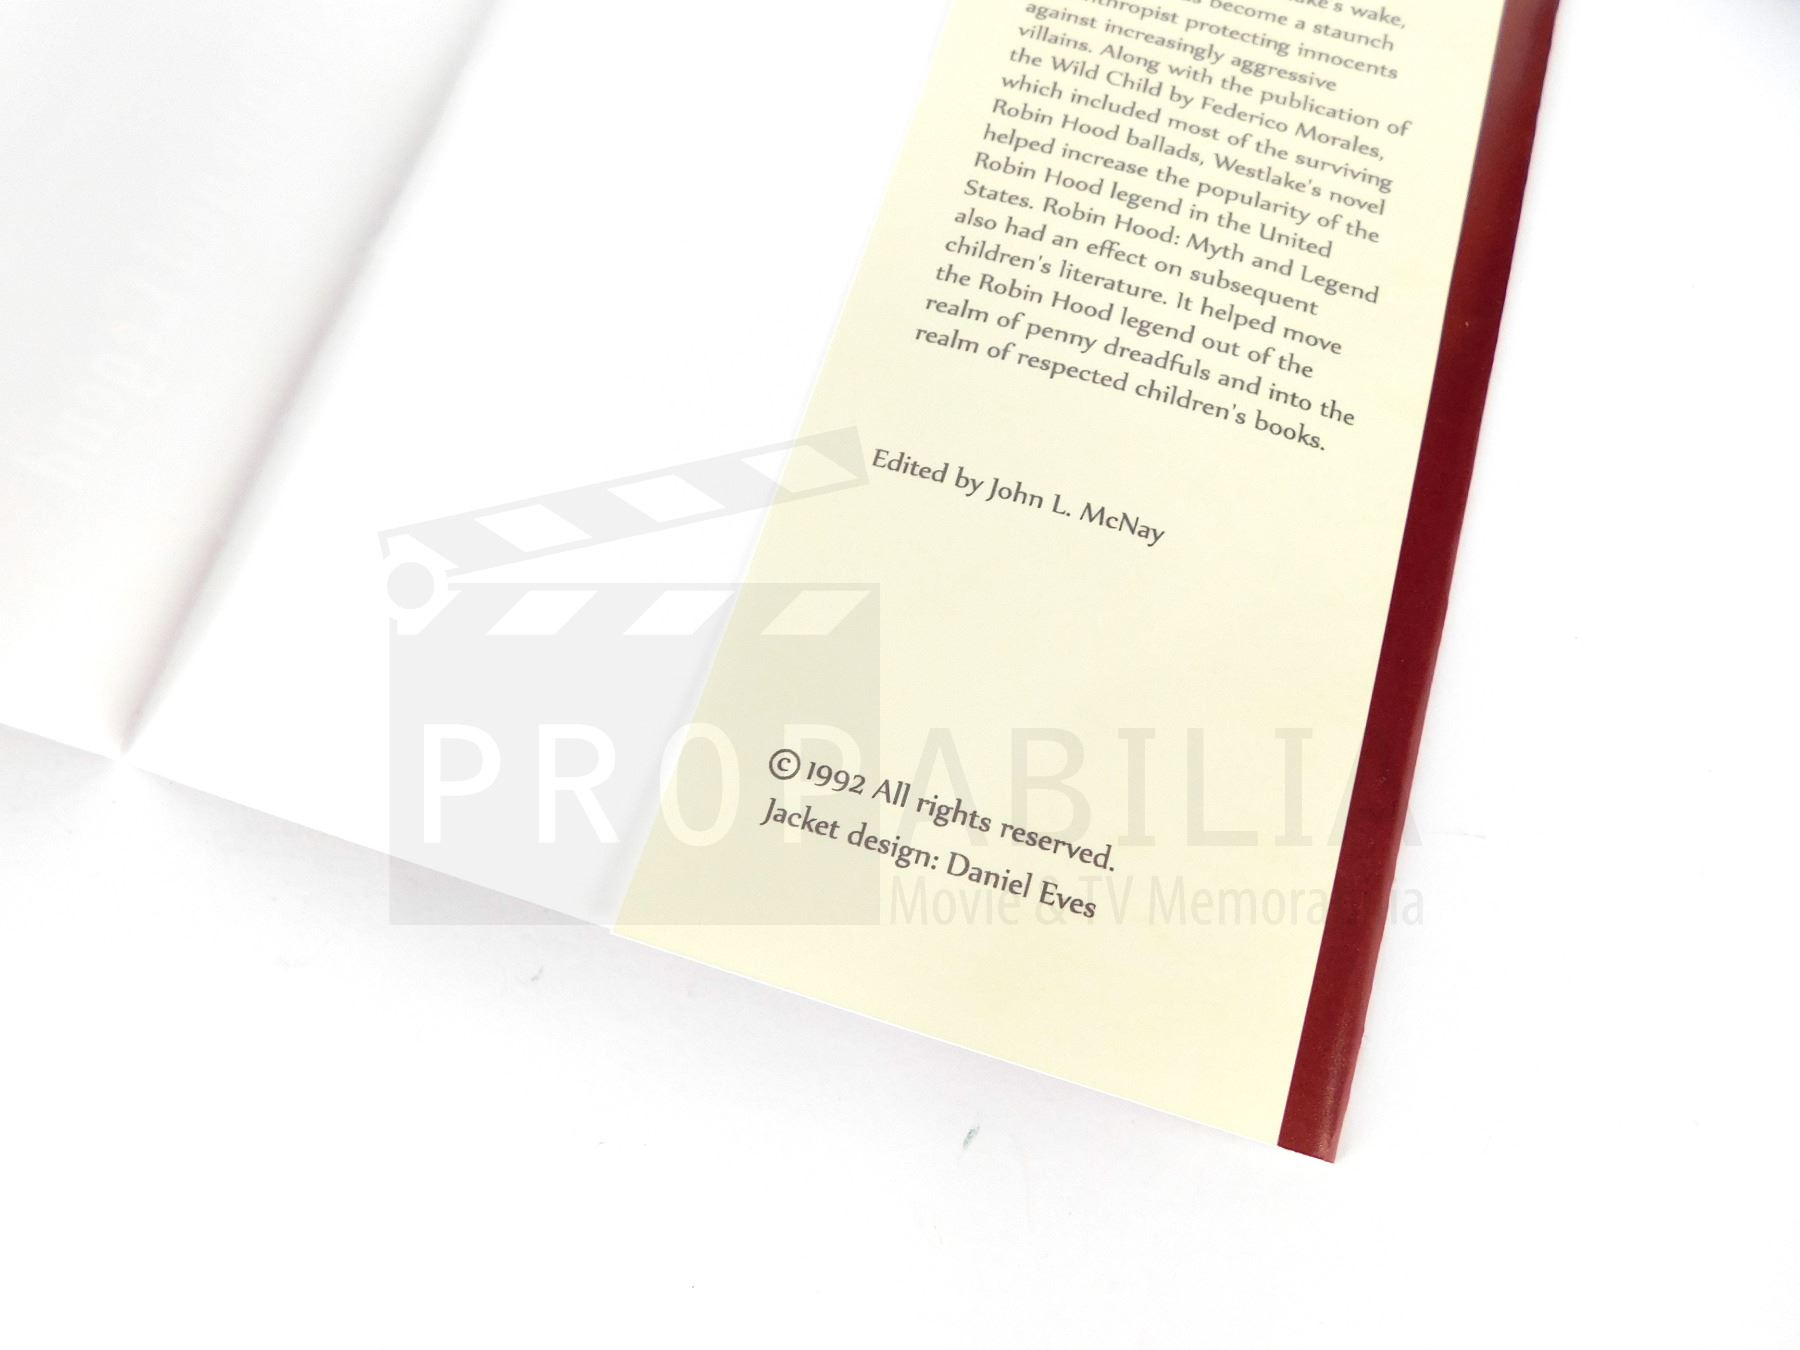 Once Upon a Time - Robin Hood Book Cover and Pages (Season 7 Episode 14)  (0184)